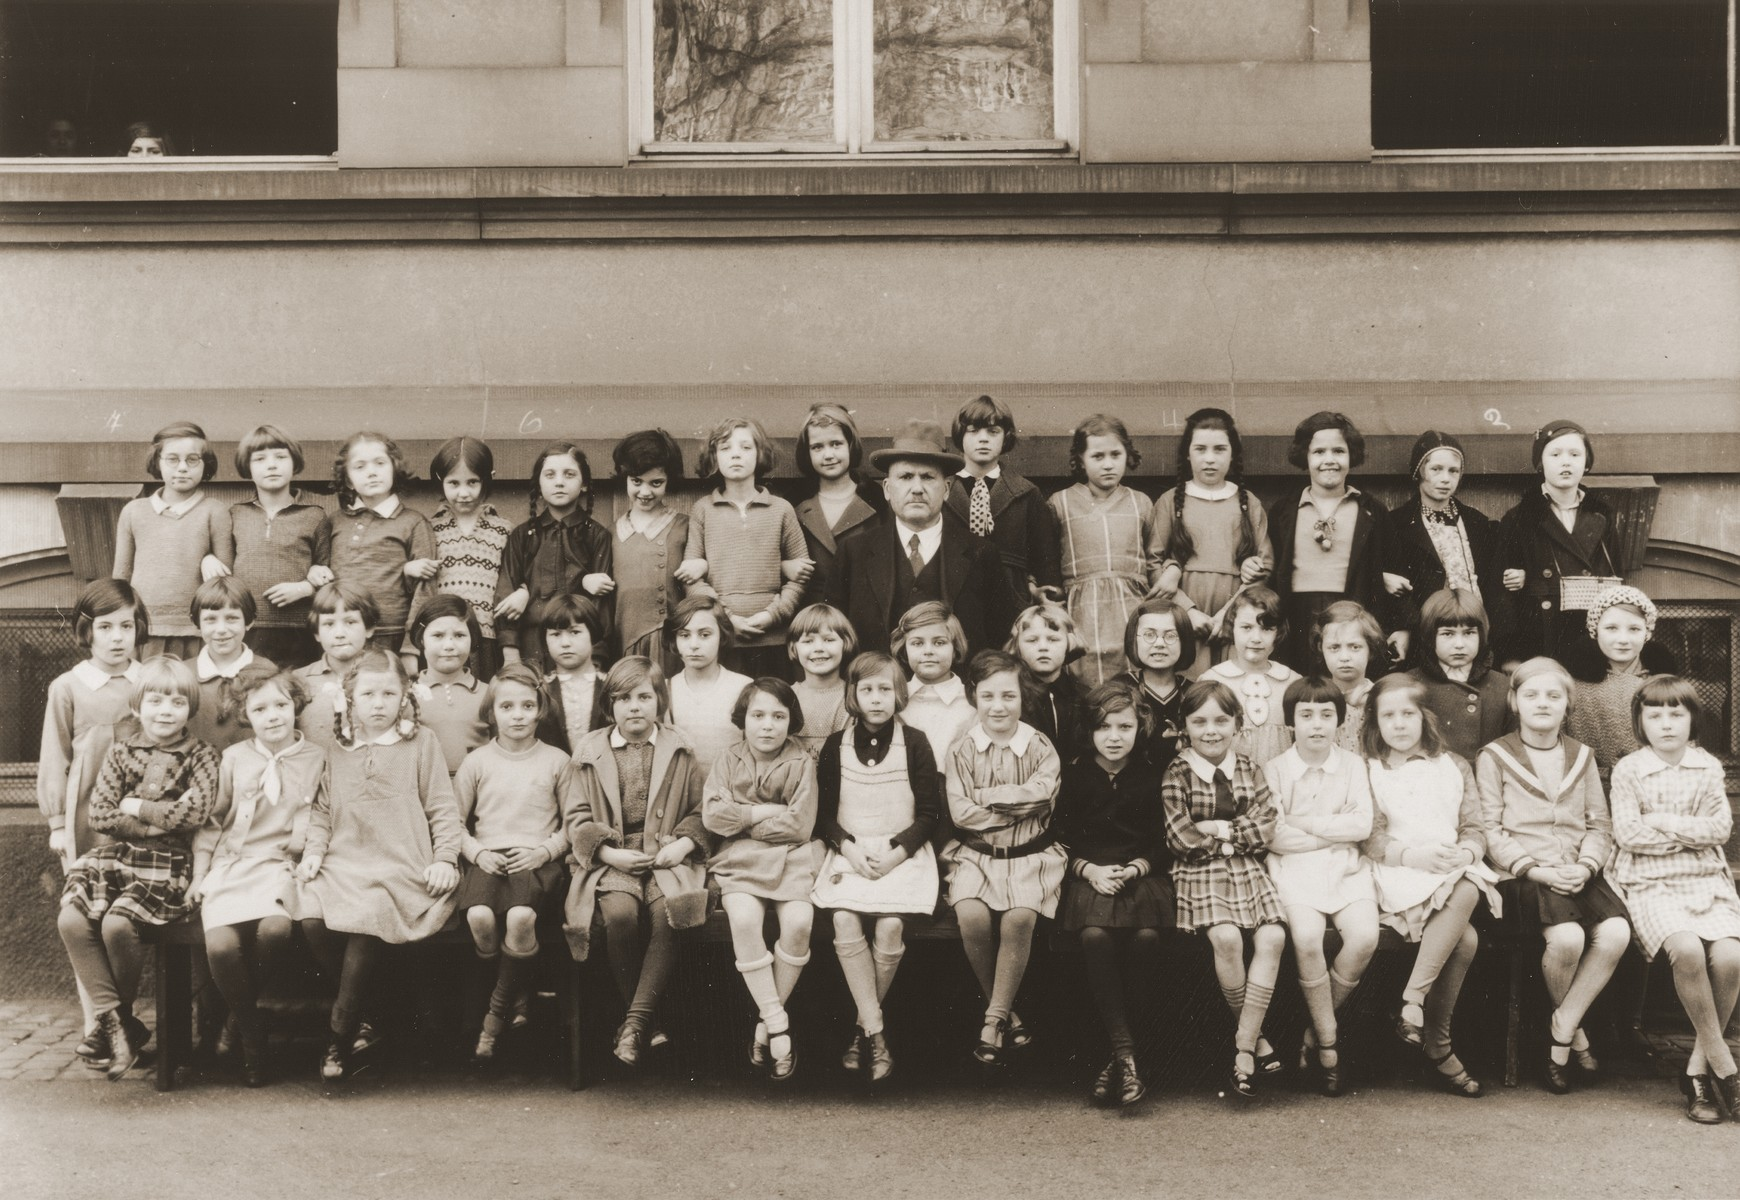 Group portrait of students at the Holzhausen Schule, an elementary school in Frankfurt.    Lore Gotthelf is pictured in the back row, third from the right.